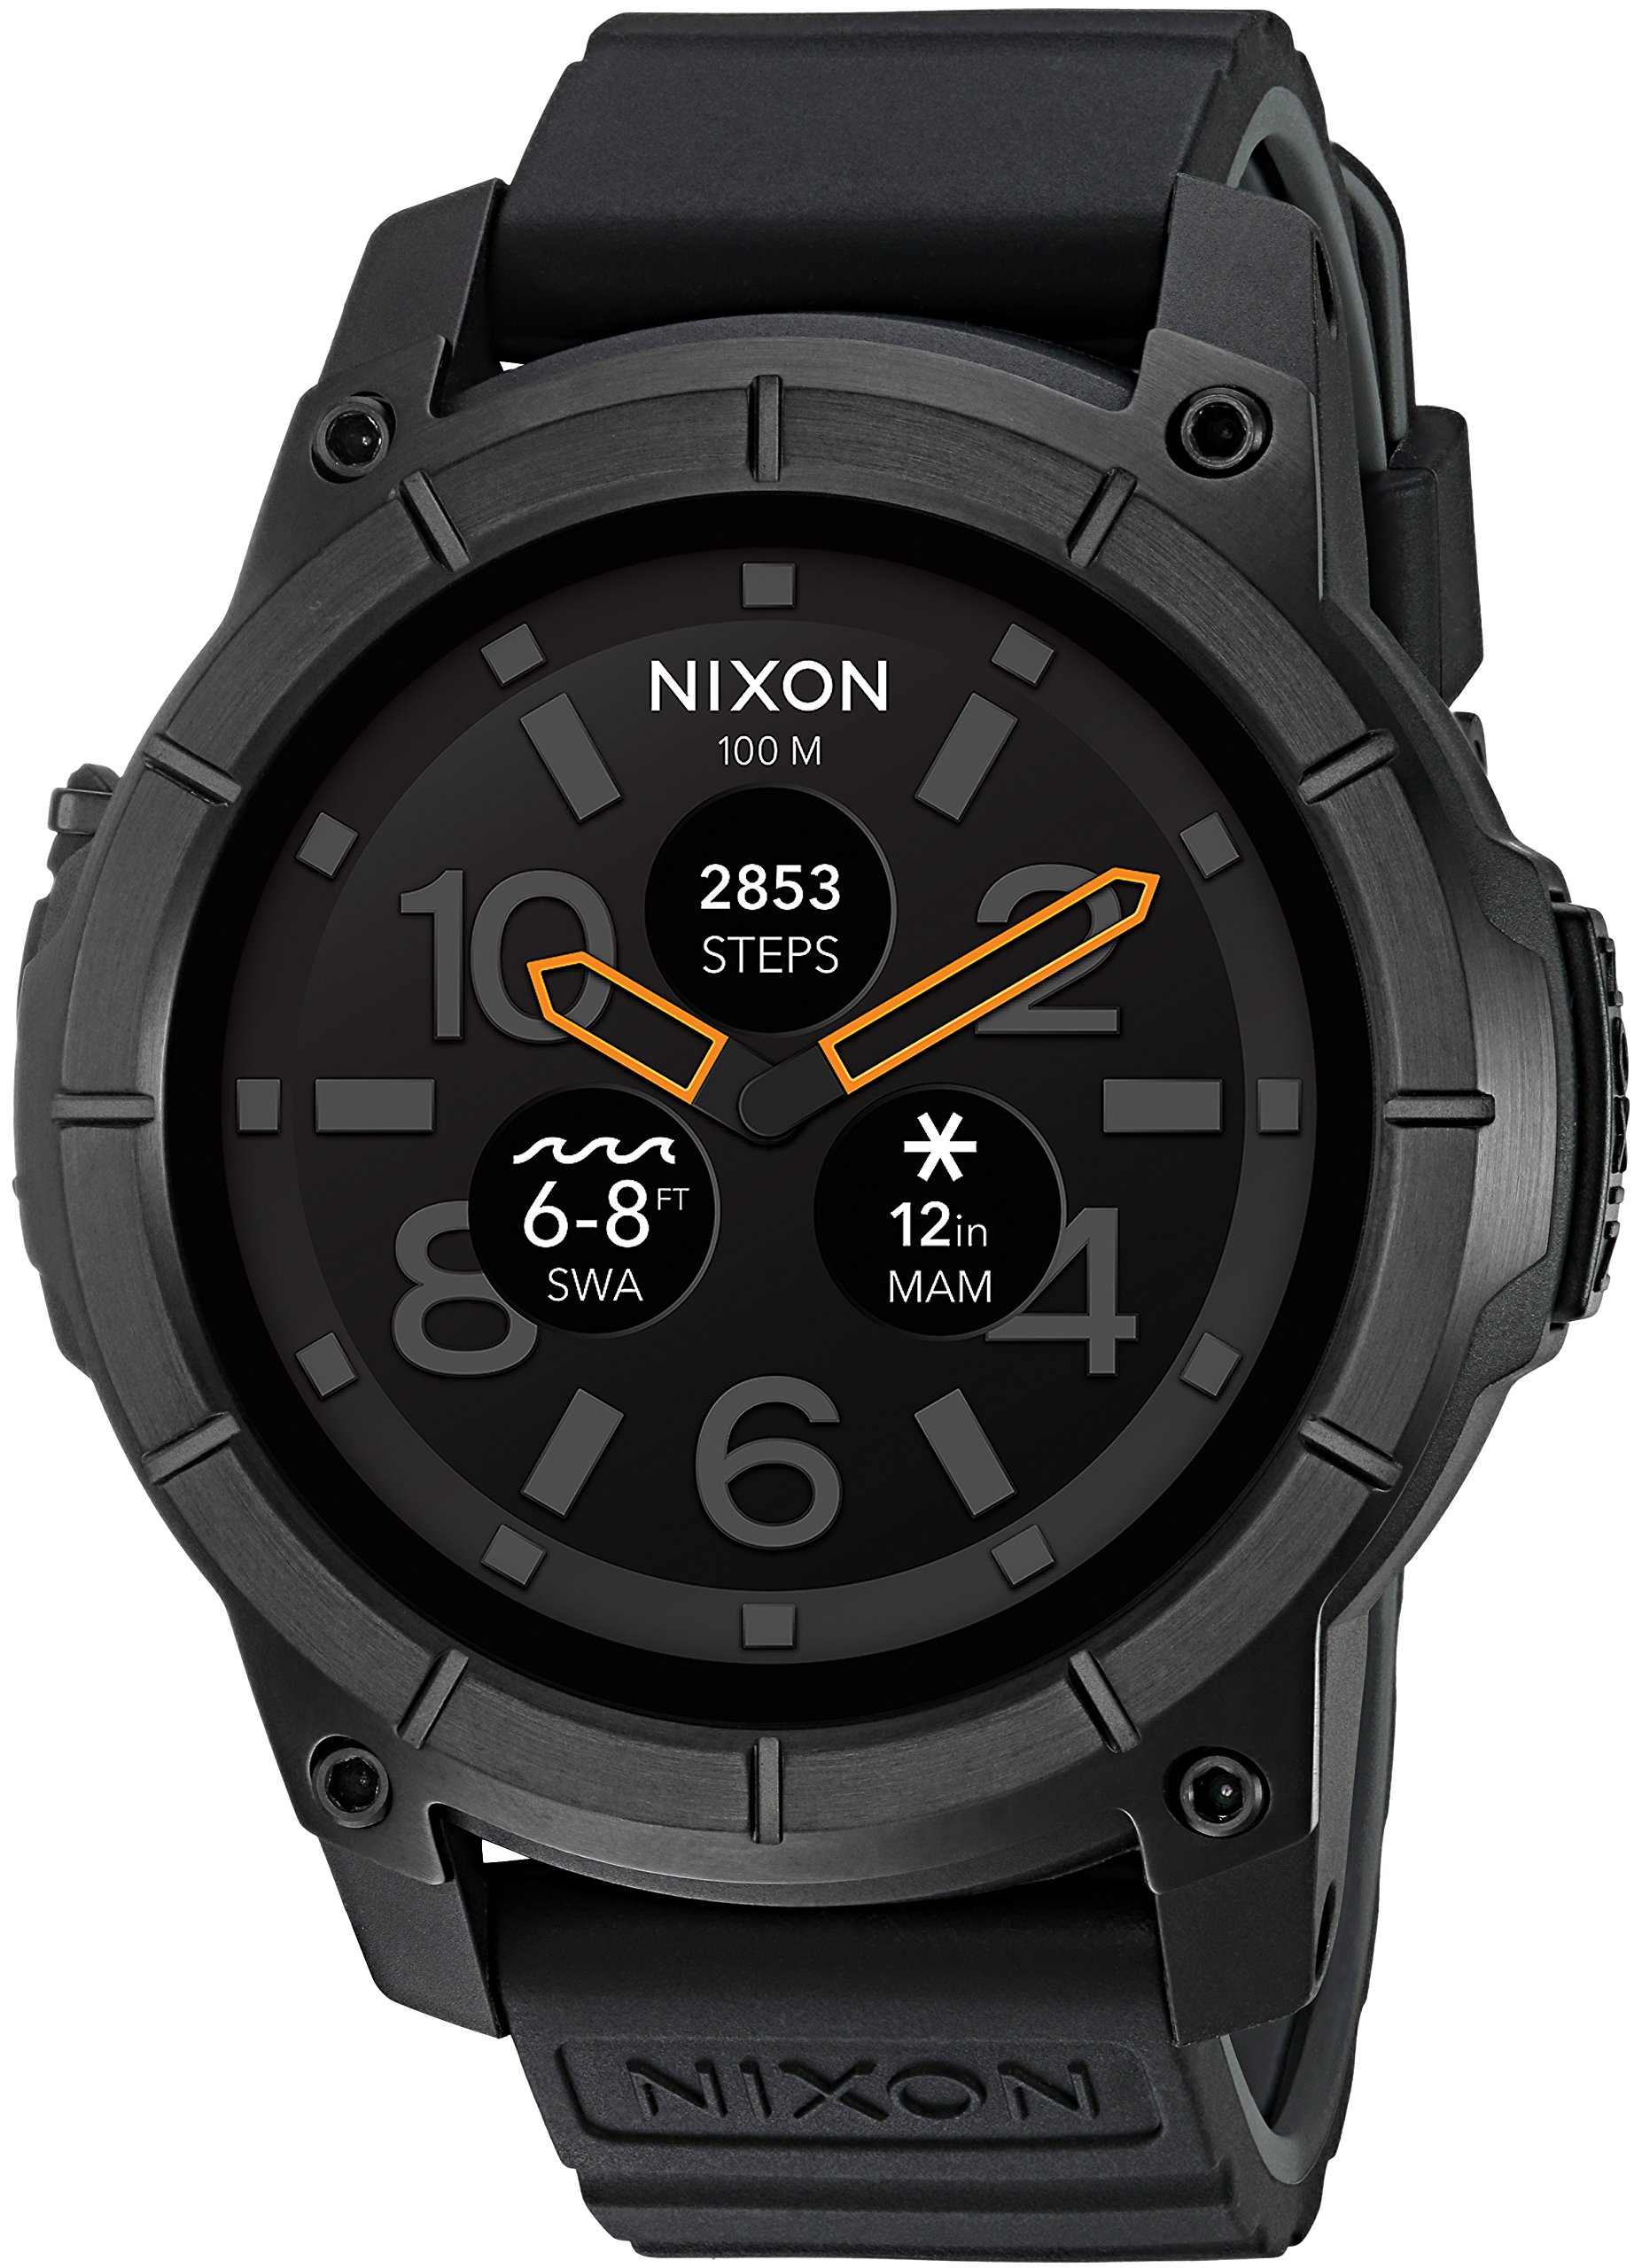 Nixon Mission Action Sports Smartwatch A1167001-00. All Black Men's Watch (48mm. Black Face/Black Silicone Band) by NIXON